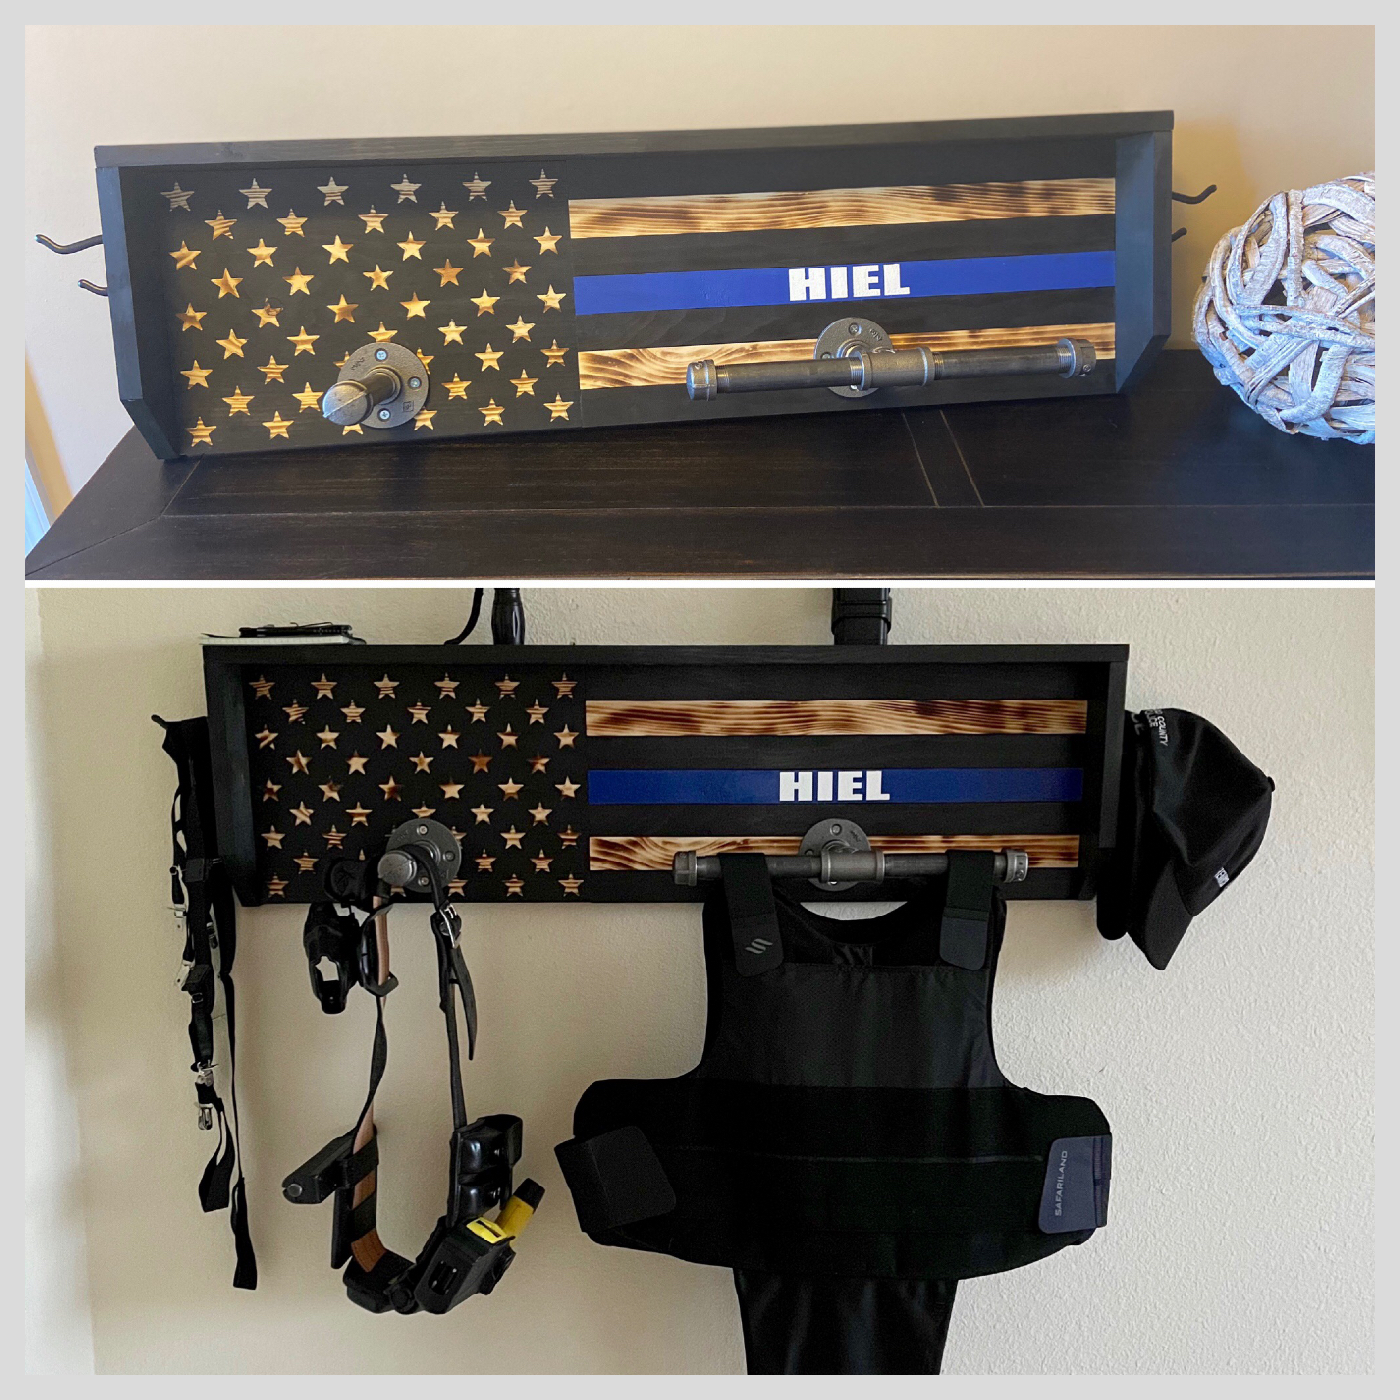 Personalized Police Shelf DIY wood project thin blue line